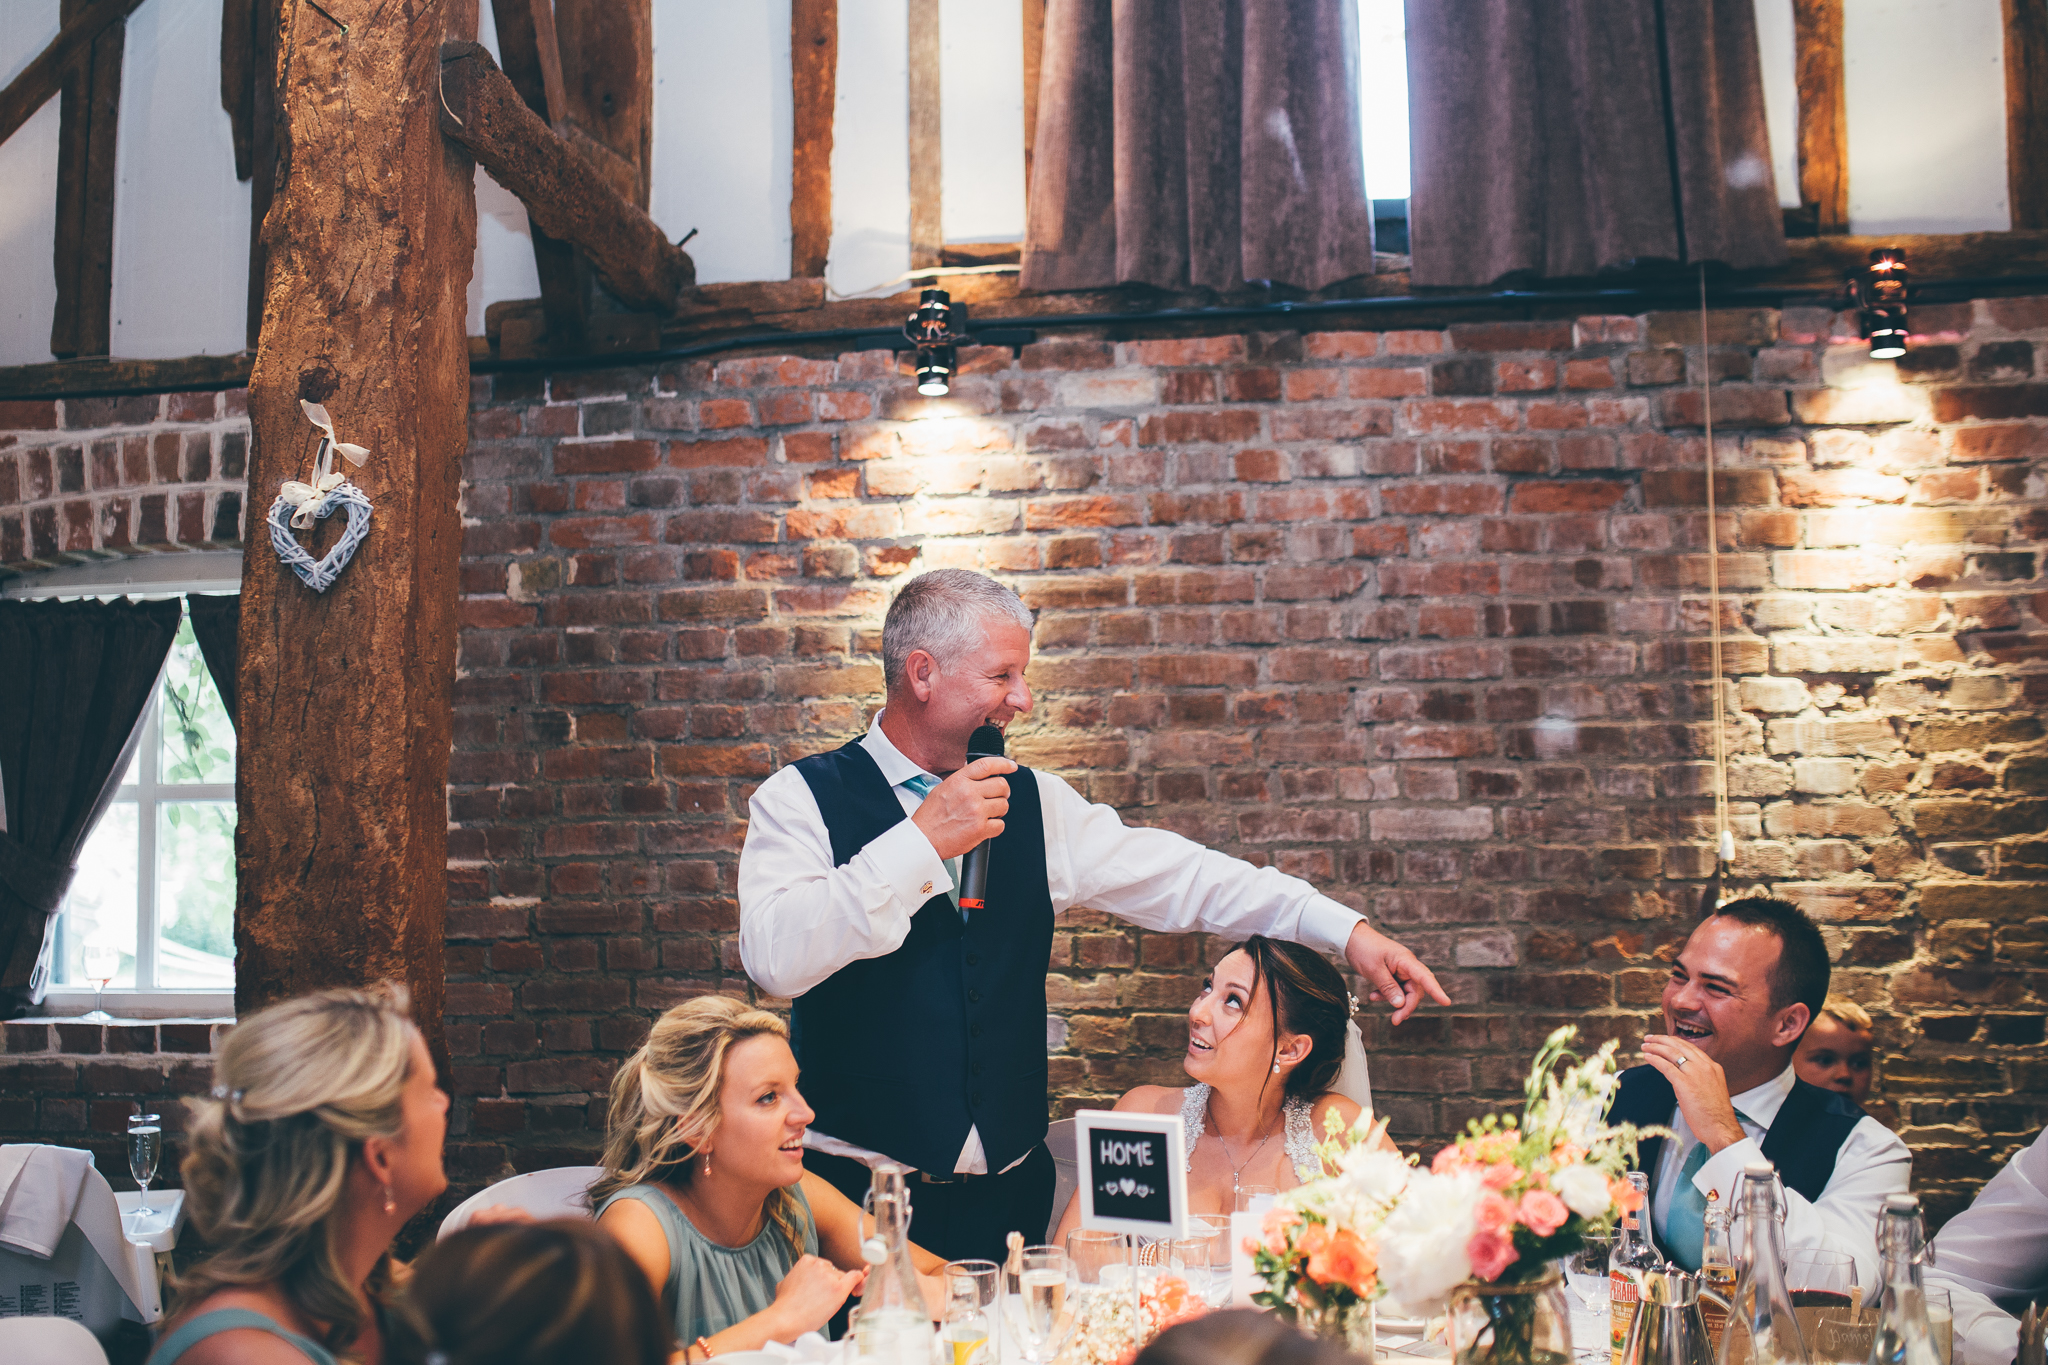 Joanna Nicole Photography Creative artistic wedding photography kent cooling castle barns vintage documentary (81 of 106).jpg